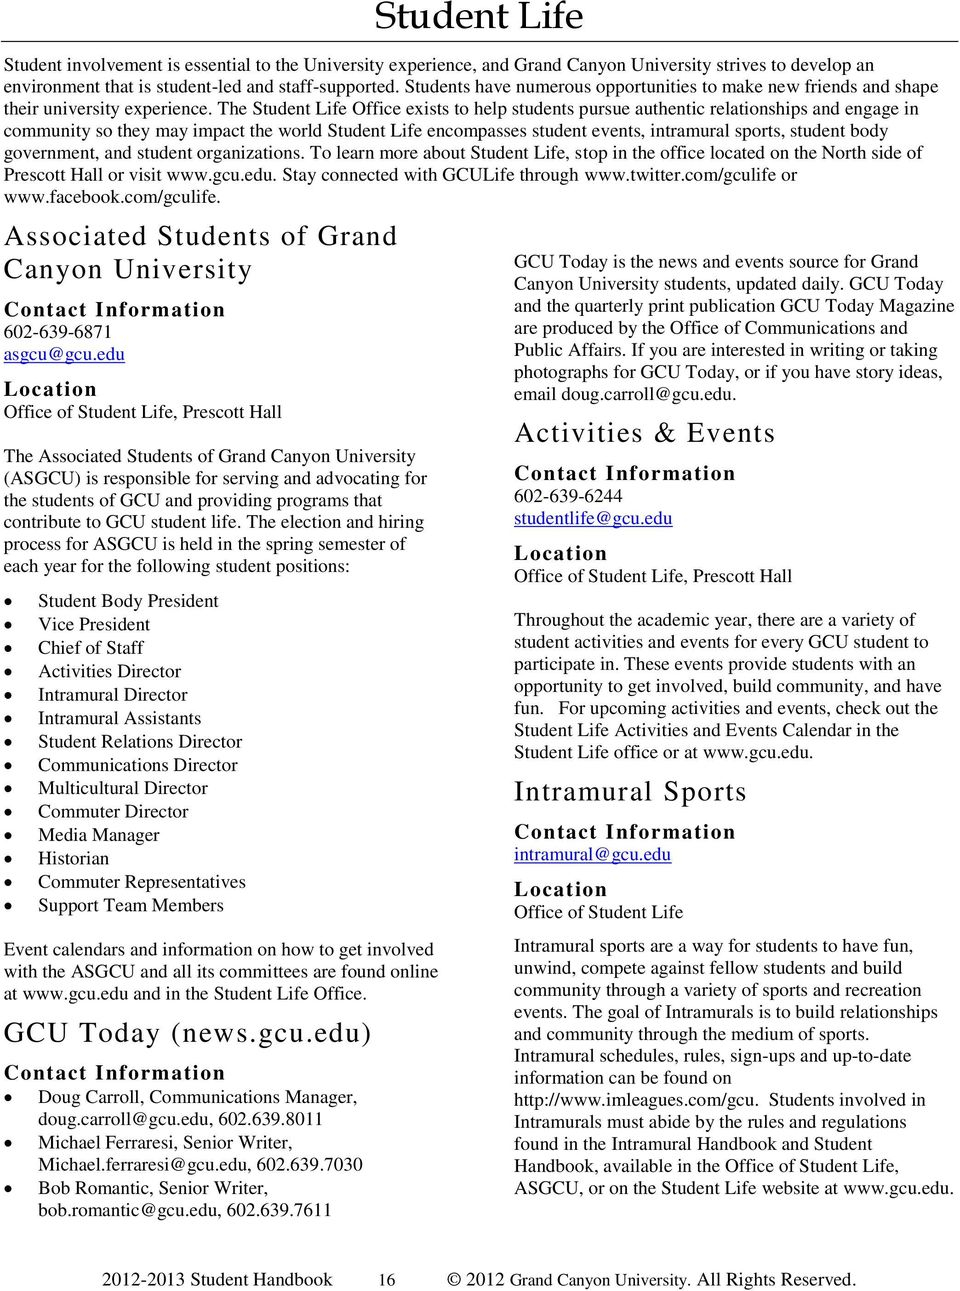 Grand Canyon University Student Handbook - Pdf Free Download With Gcu Academic Calendar